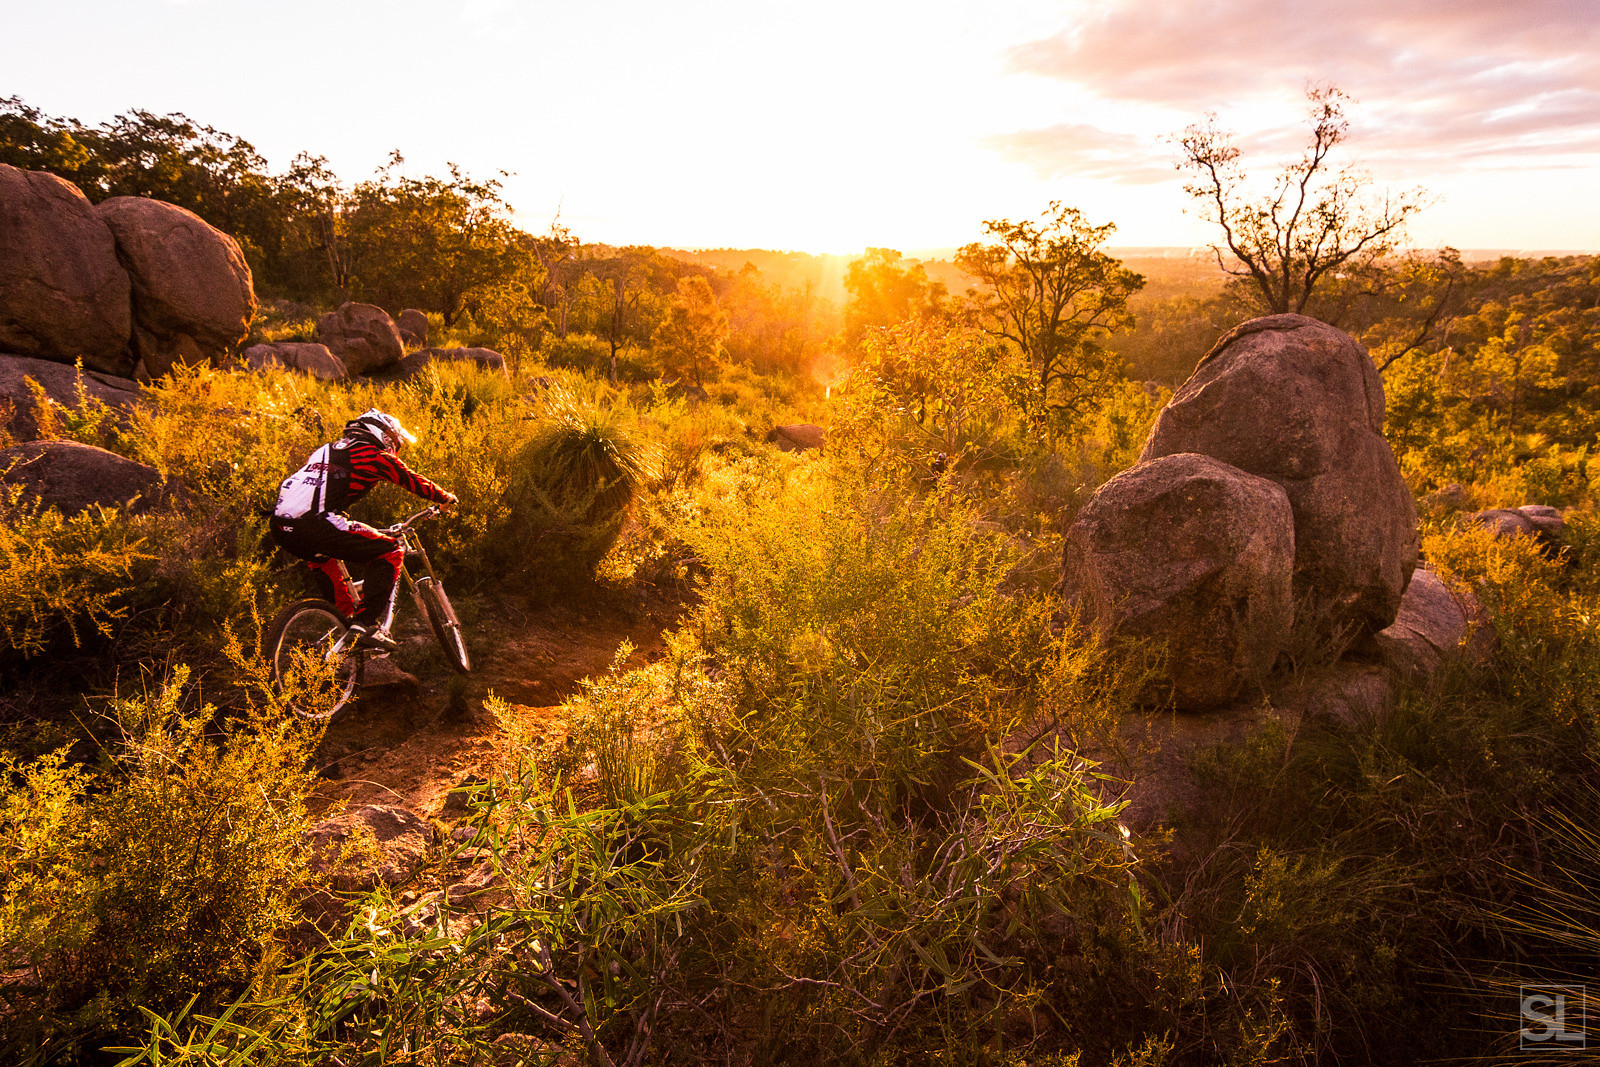 Shredding into the sunset - Chamakazi - Mountain Biking Pictures - Vital MTB